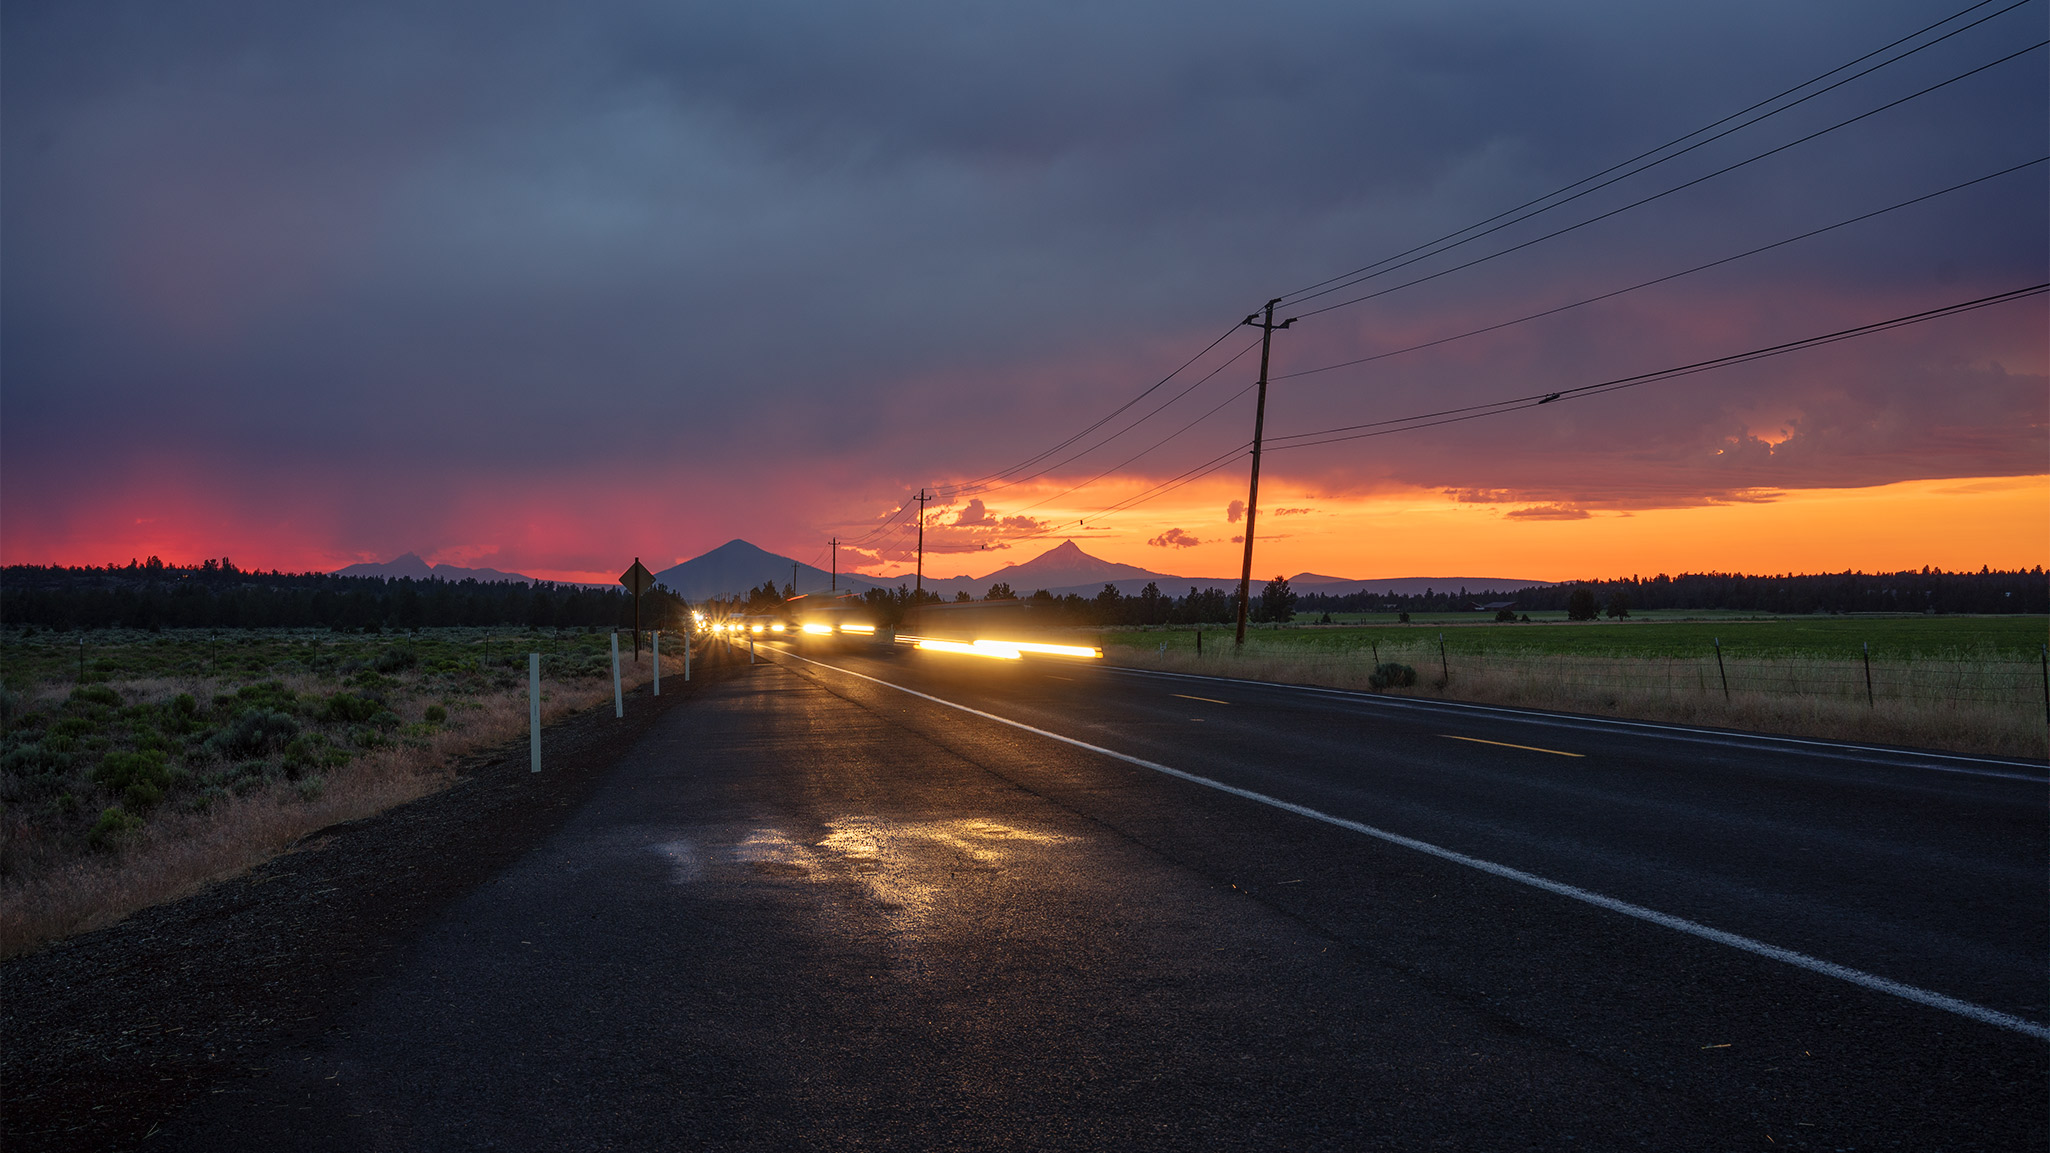 Central Oregon HWY at sunset